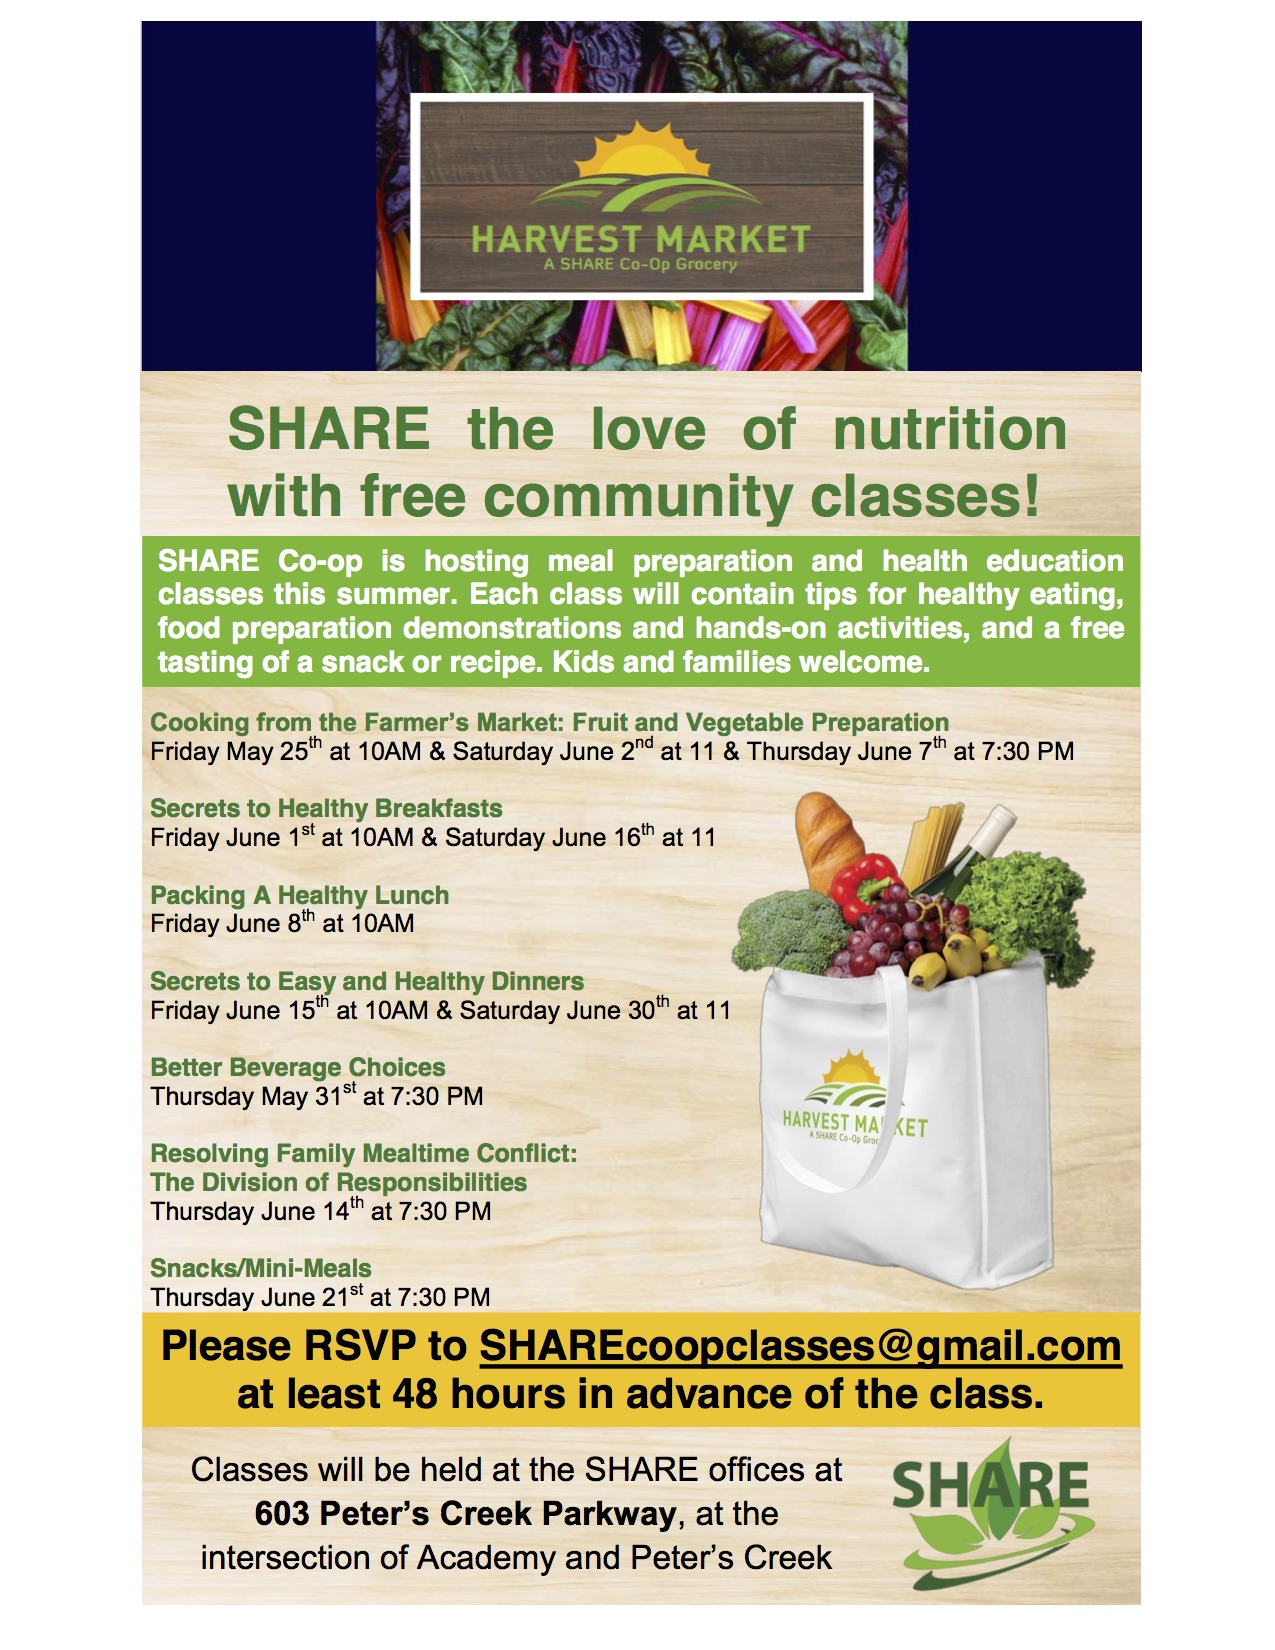 Free community cooking and health education classes